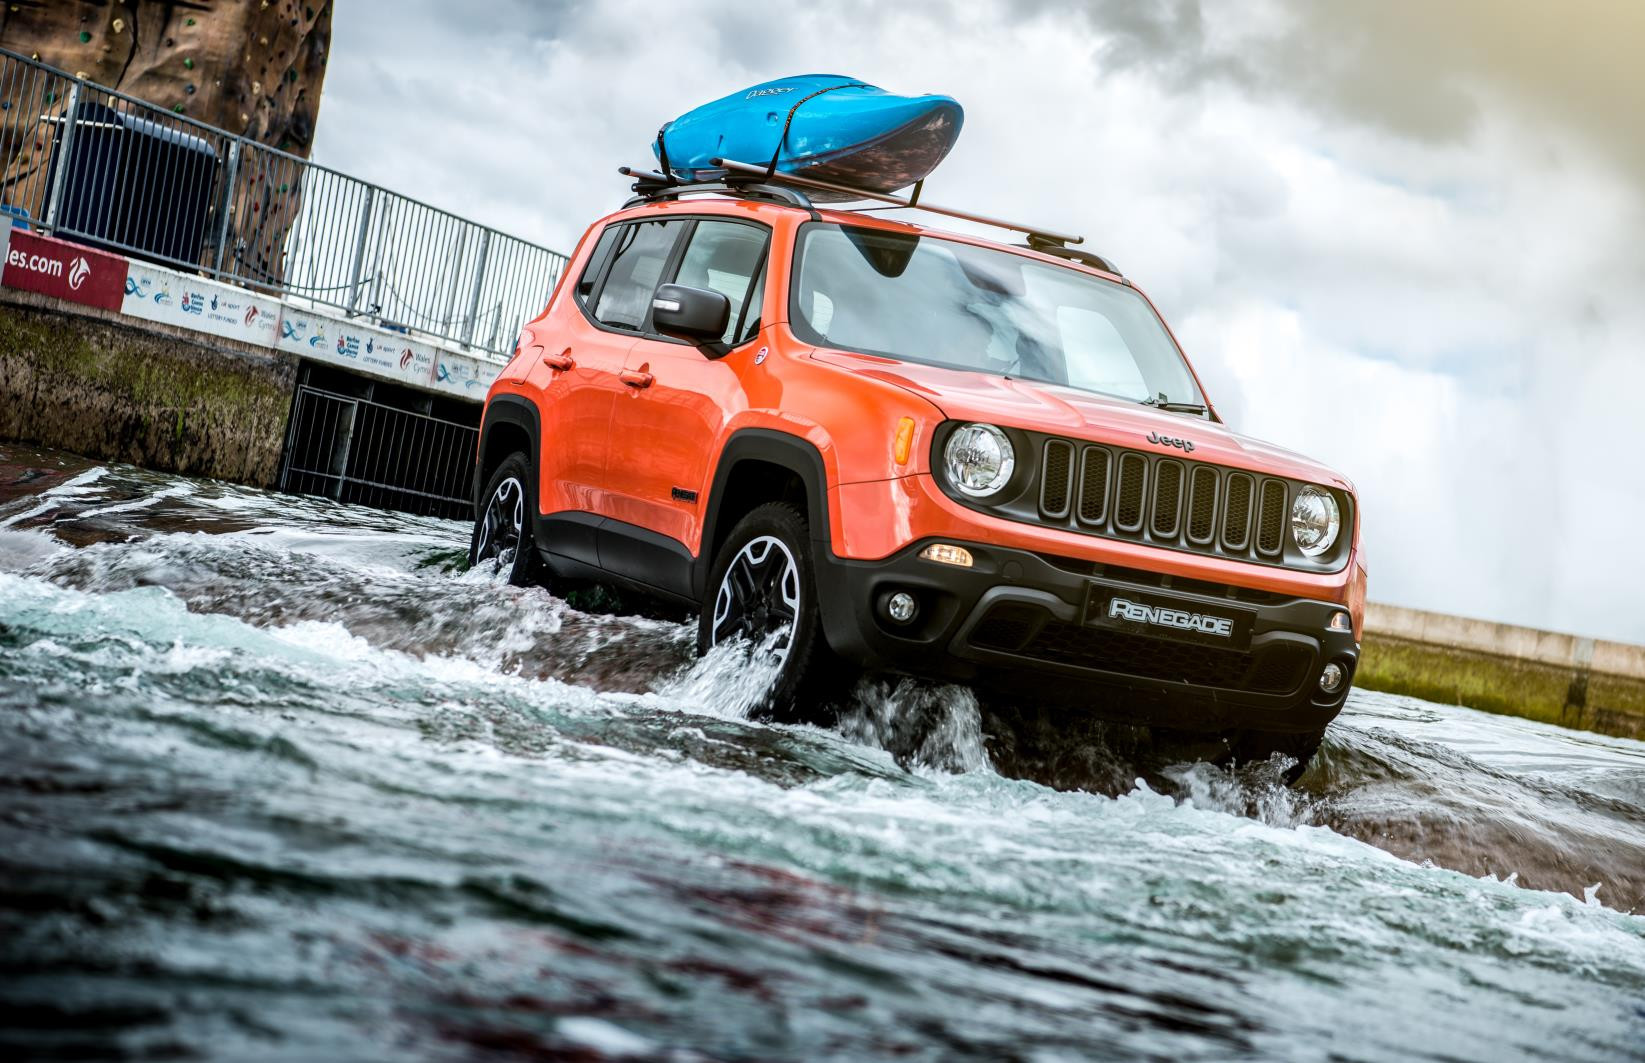 Orange Jeep Renegade going through water